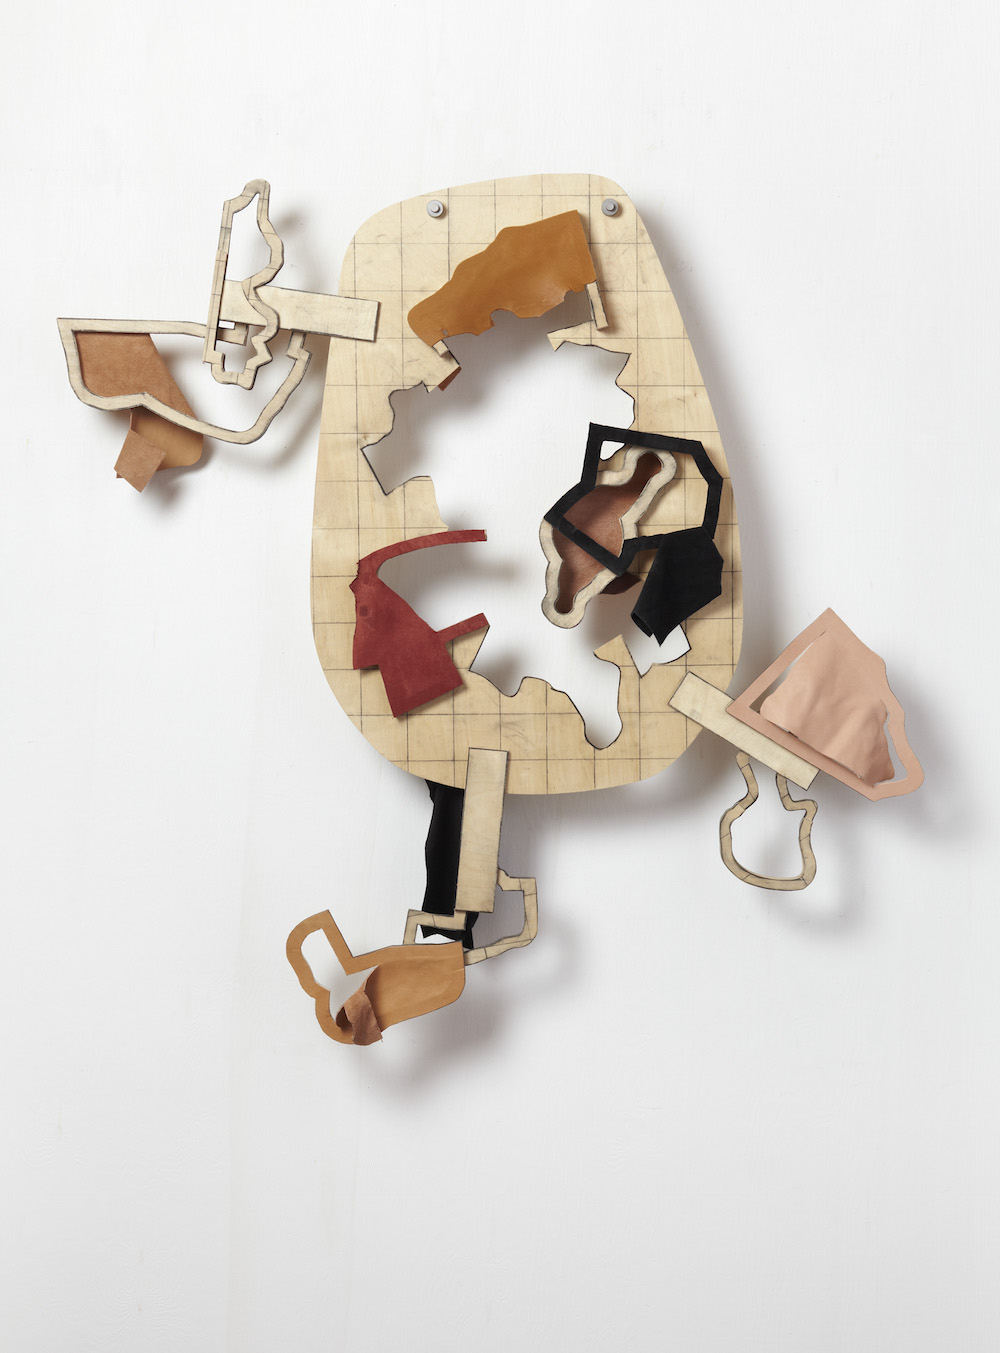 Thomas Bang - Diagram of intrusion and displacement, No. 1, 130 x 131 x 19 cm.